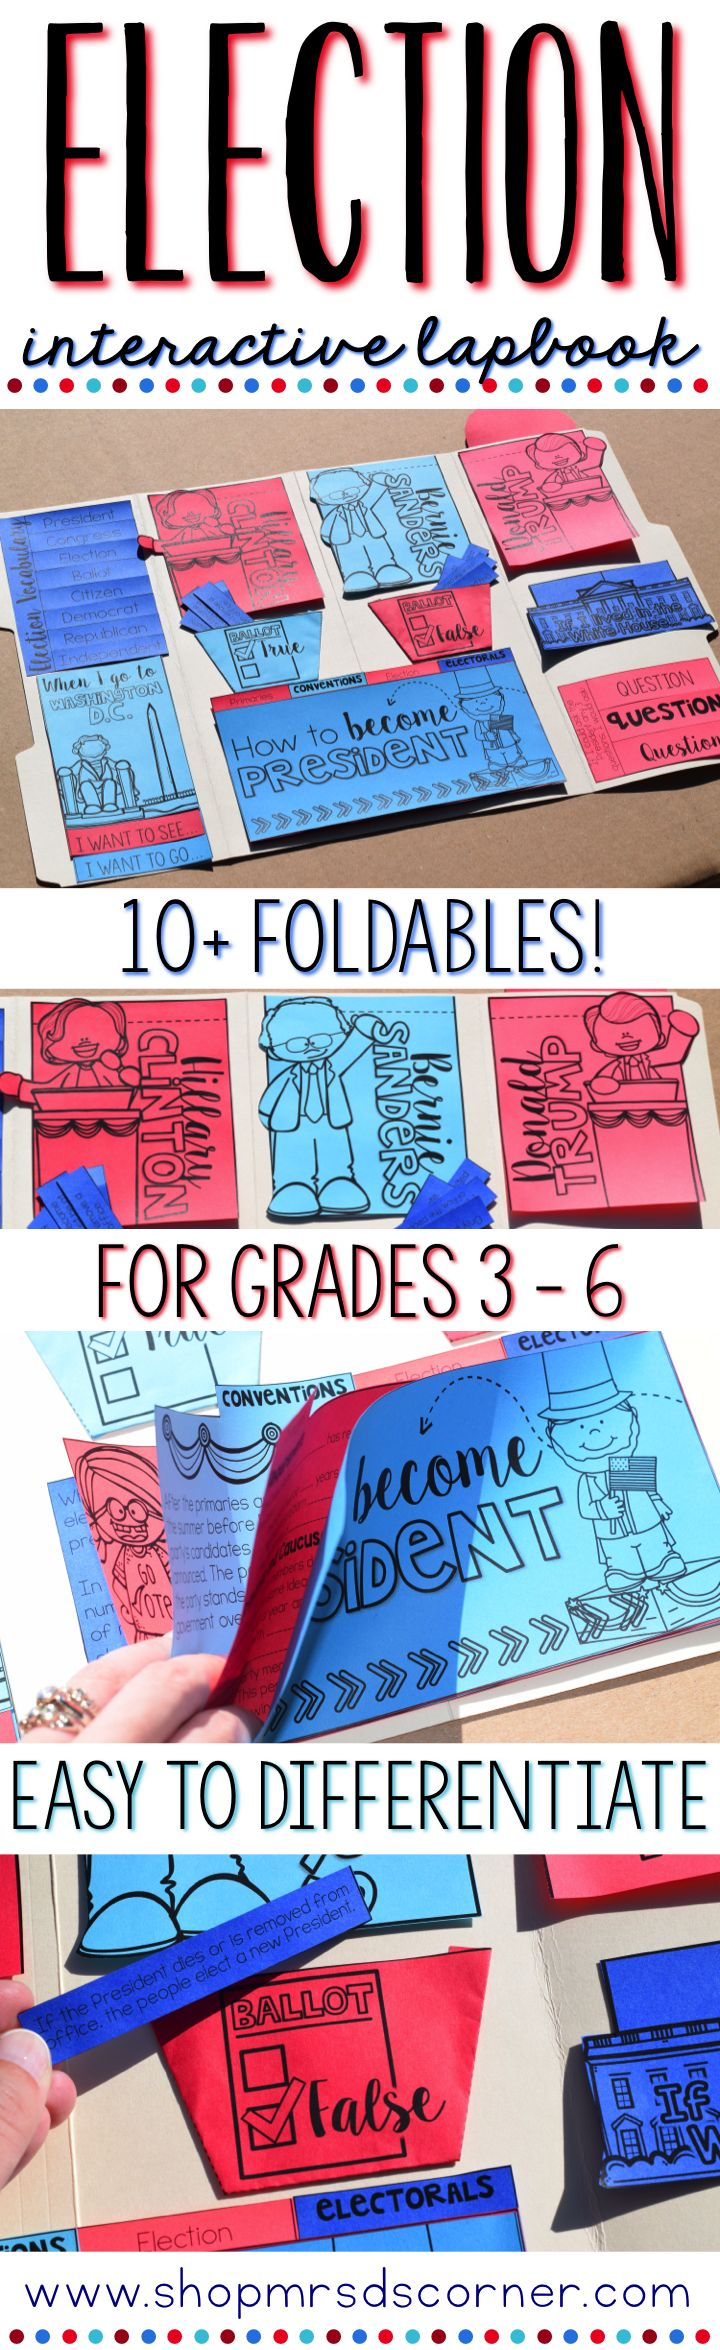 233 best 4th grade SS images on Pinterest | Teaching social studies ...